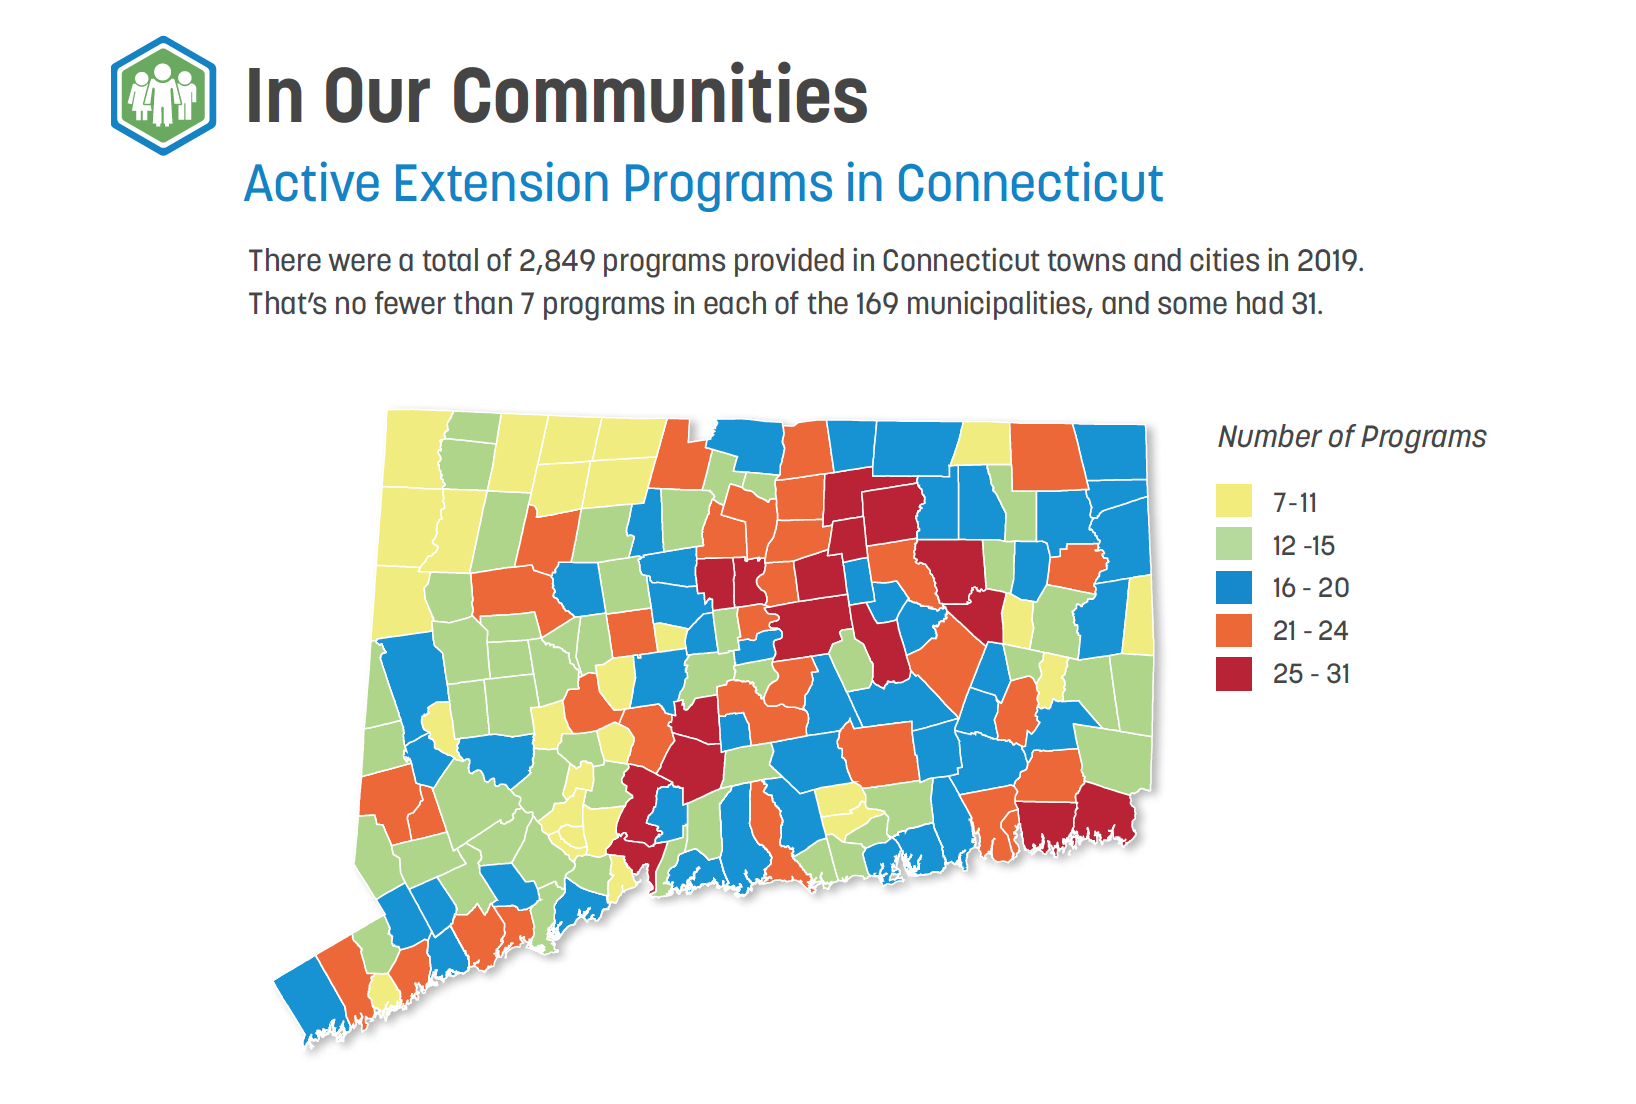 map of Extension programs in each town for 2019